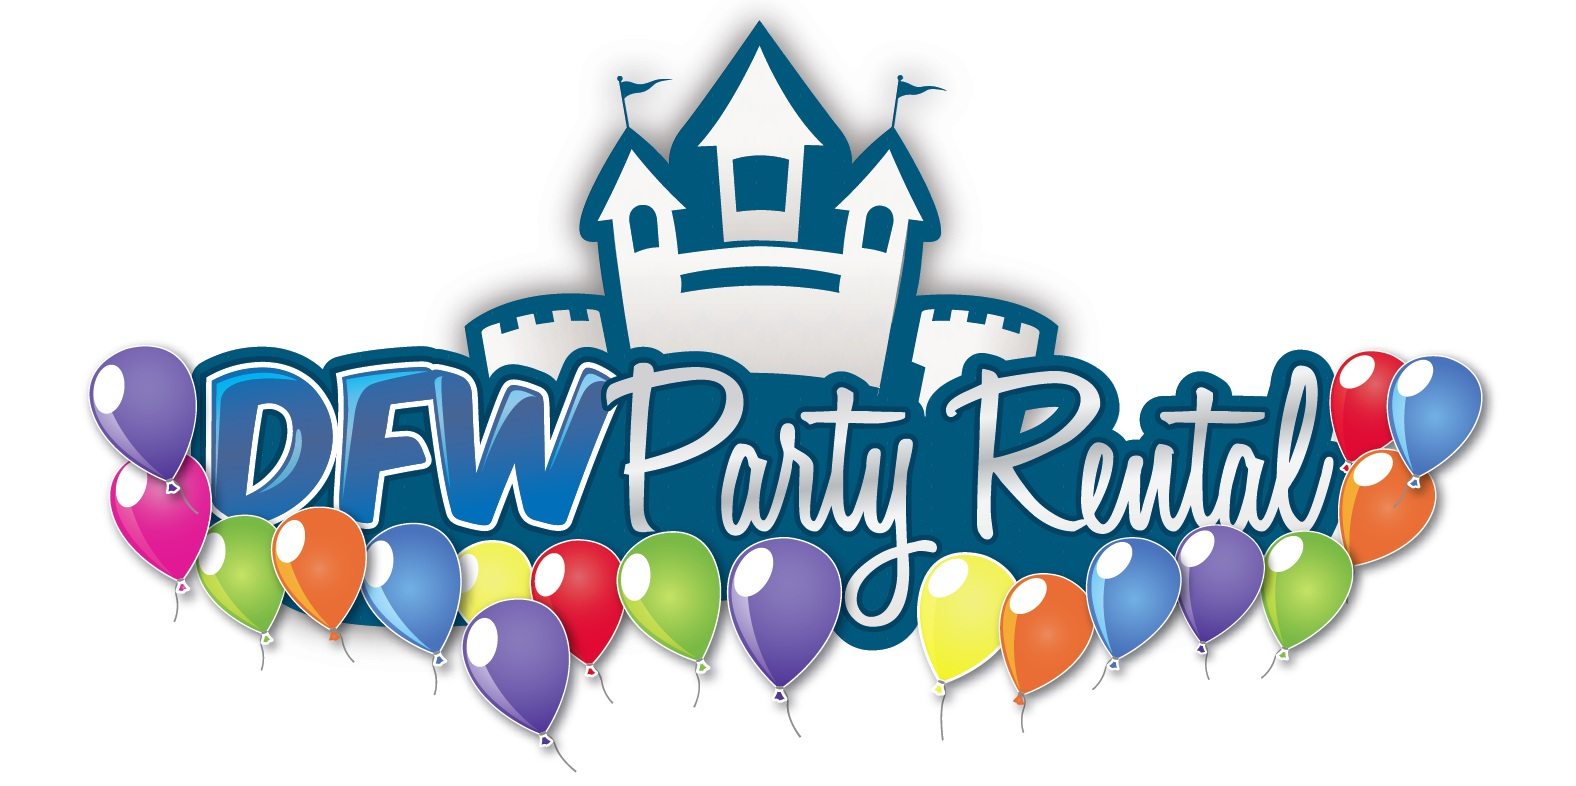 About DFW Party Rental